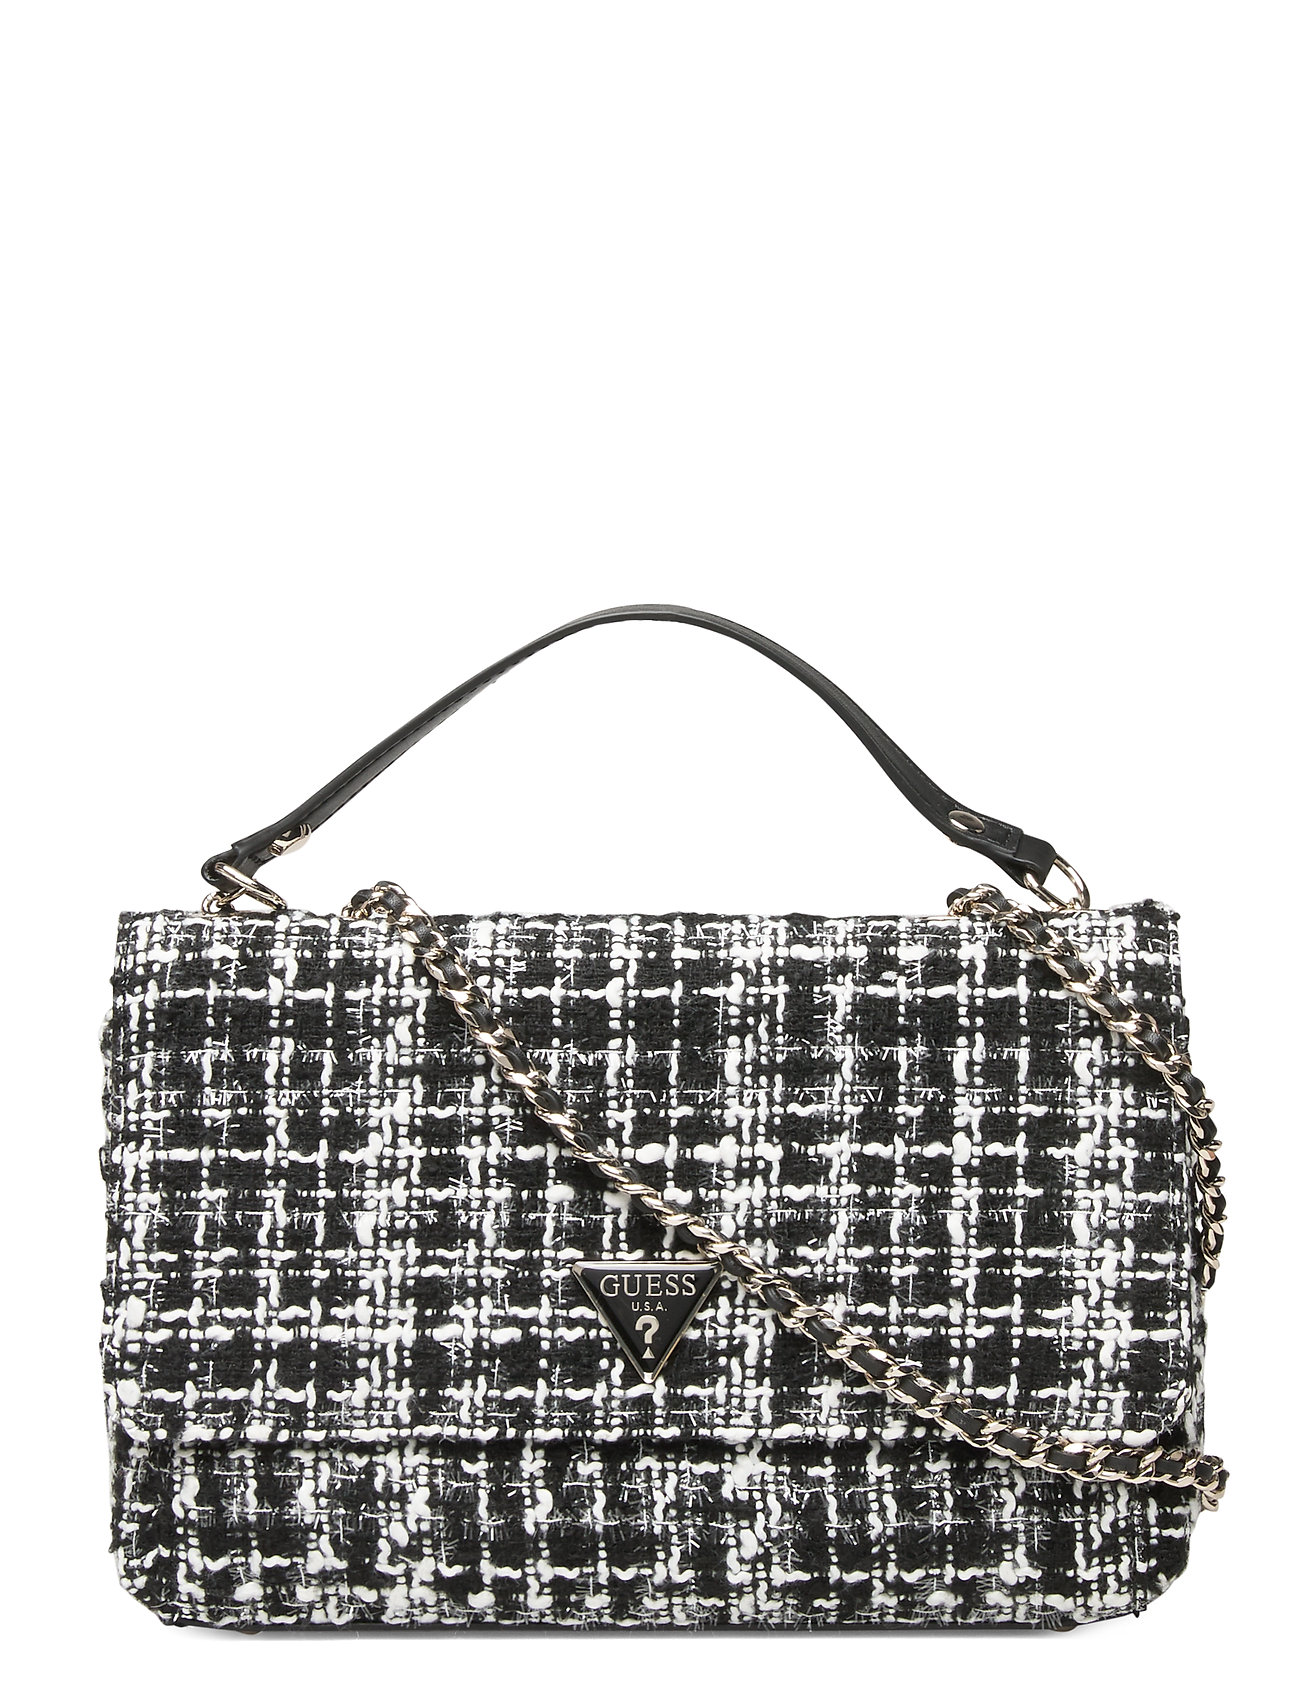 GUESS CESSILY CONVERTIBLE XBODY FLAP - BLACK MULTI